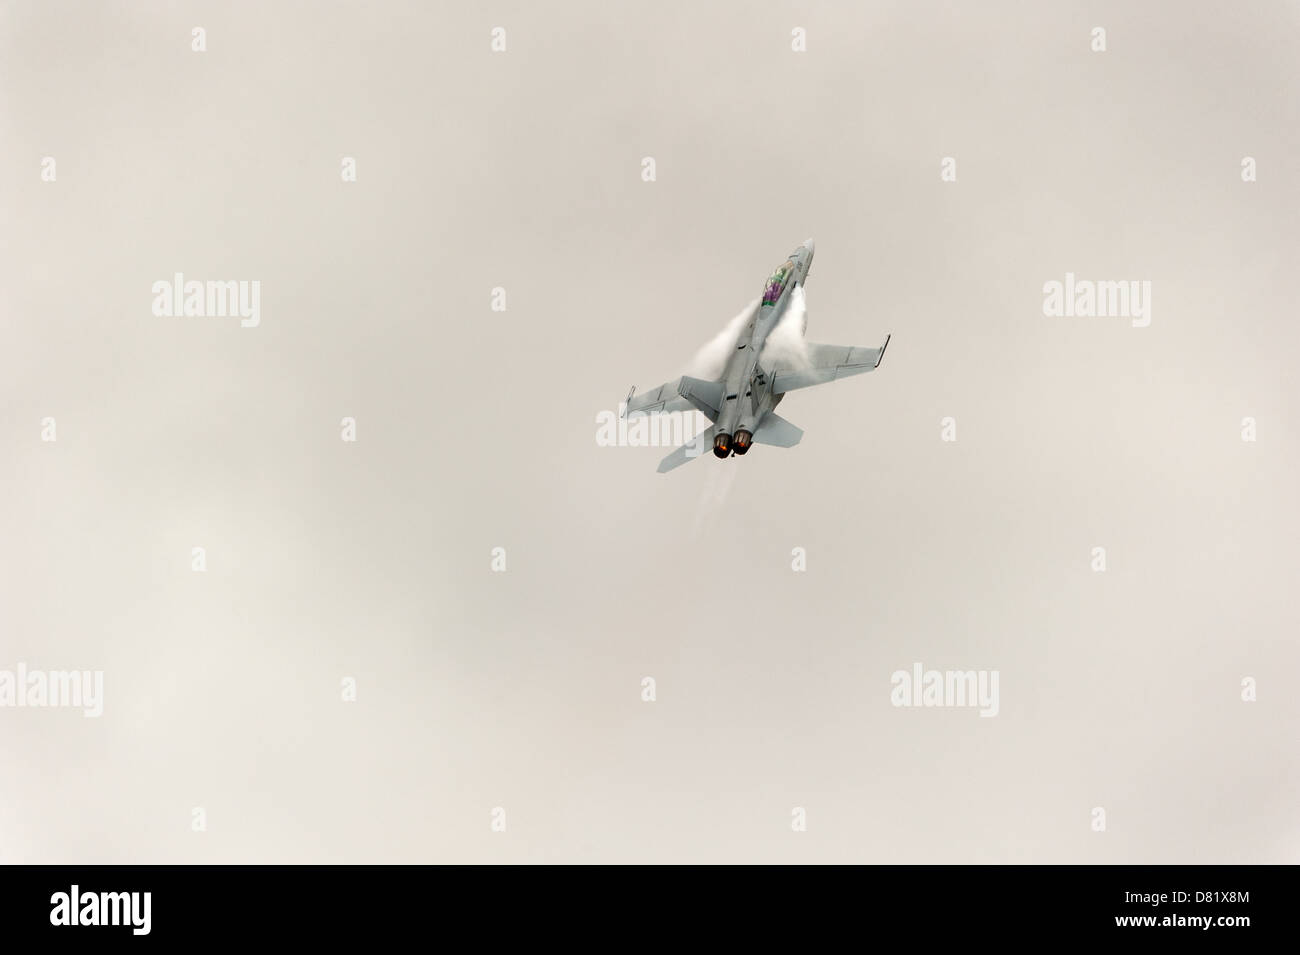 An F/A-18 fighter jet goes through its paces at an air show in Australia. - Stock Image